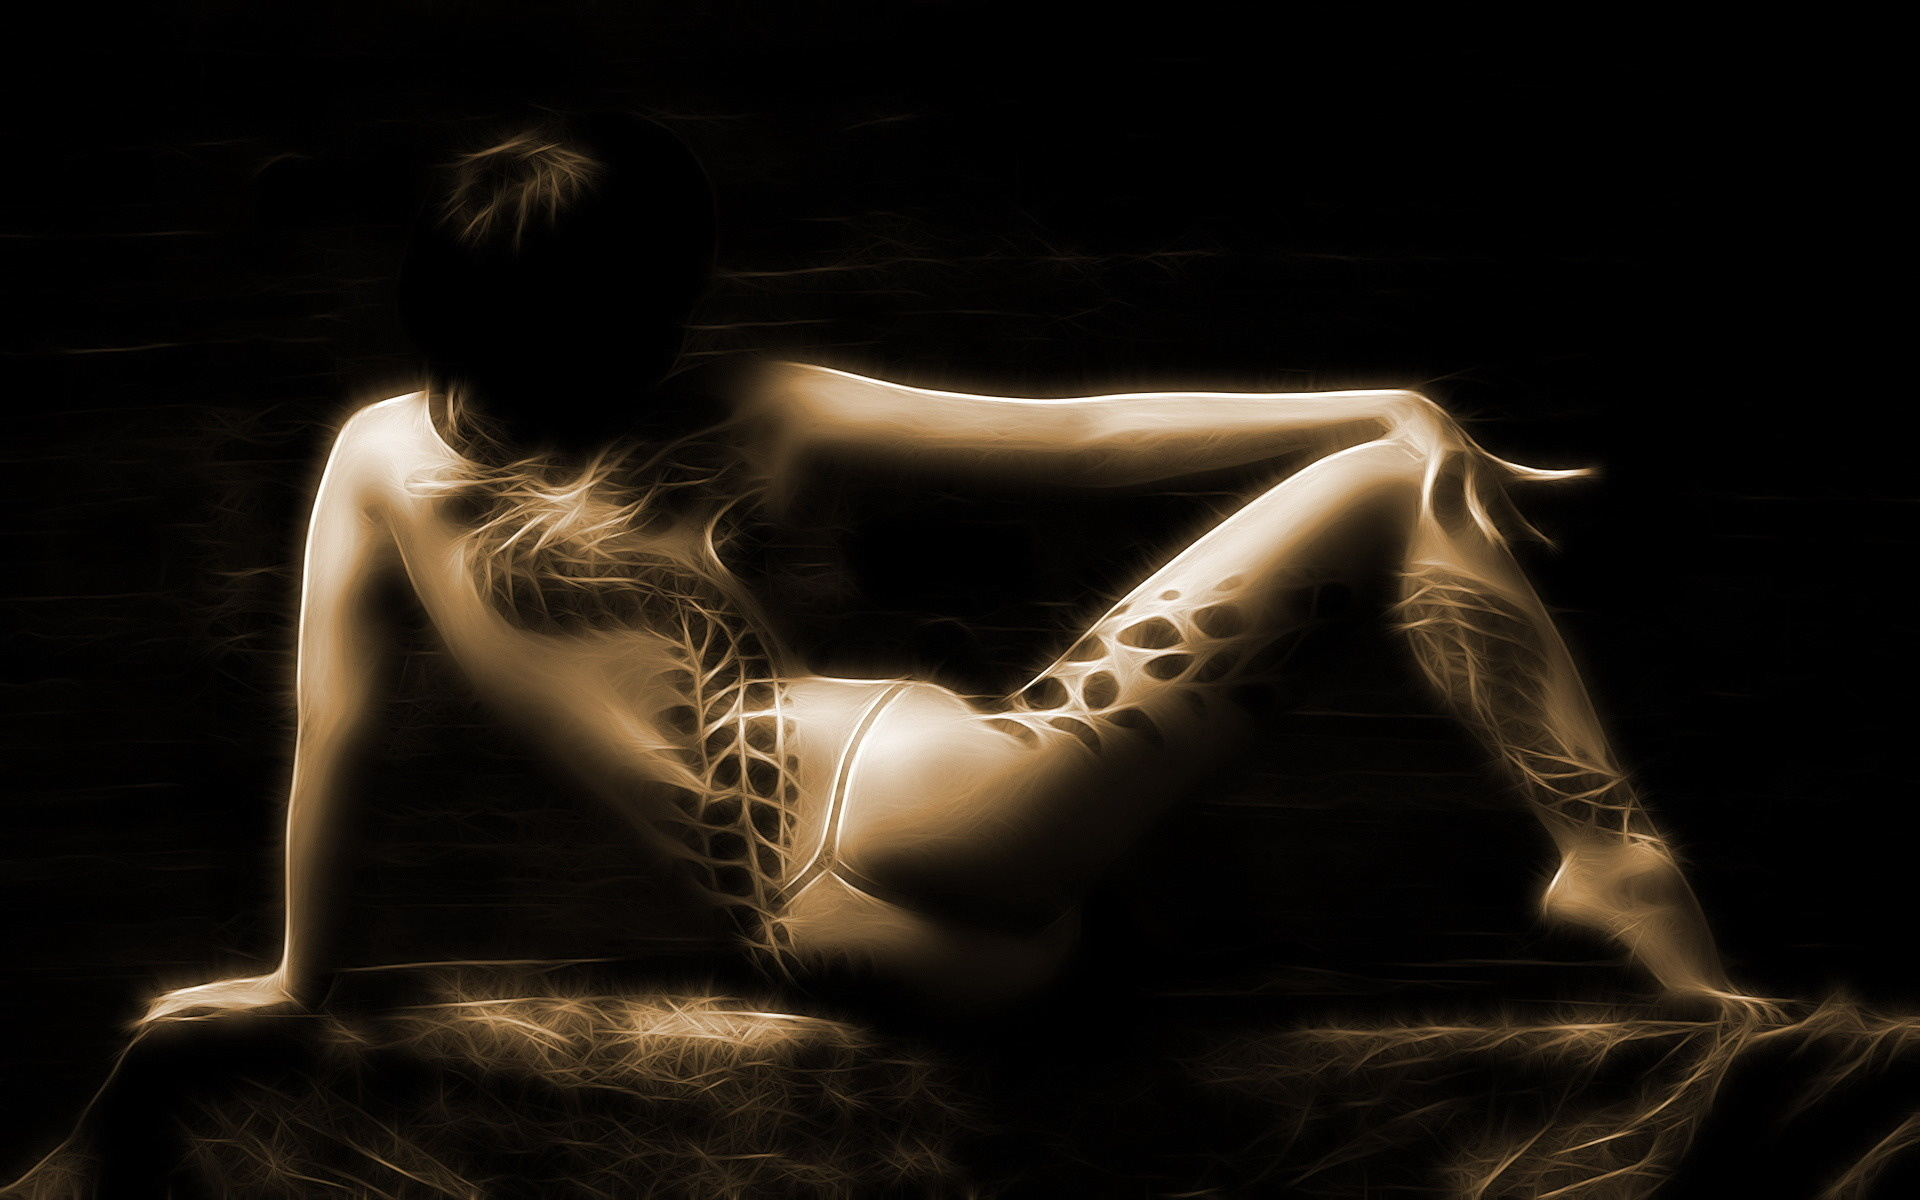 Wallpaper Brunette, Body Art Desktop Wallpaper - Fantasy -1458